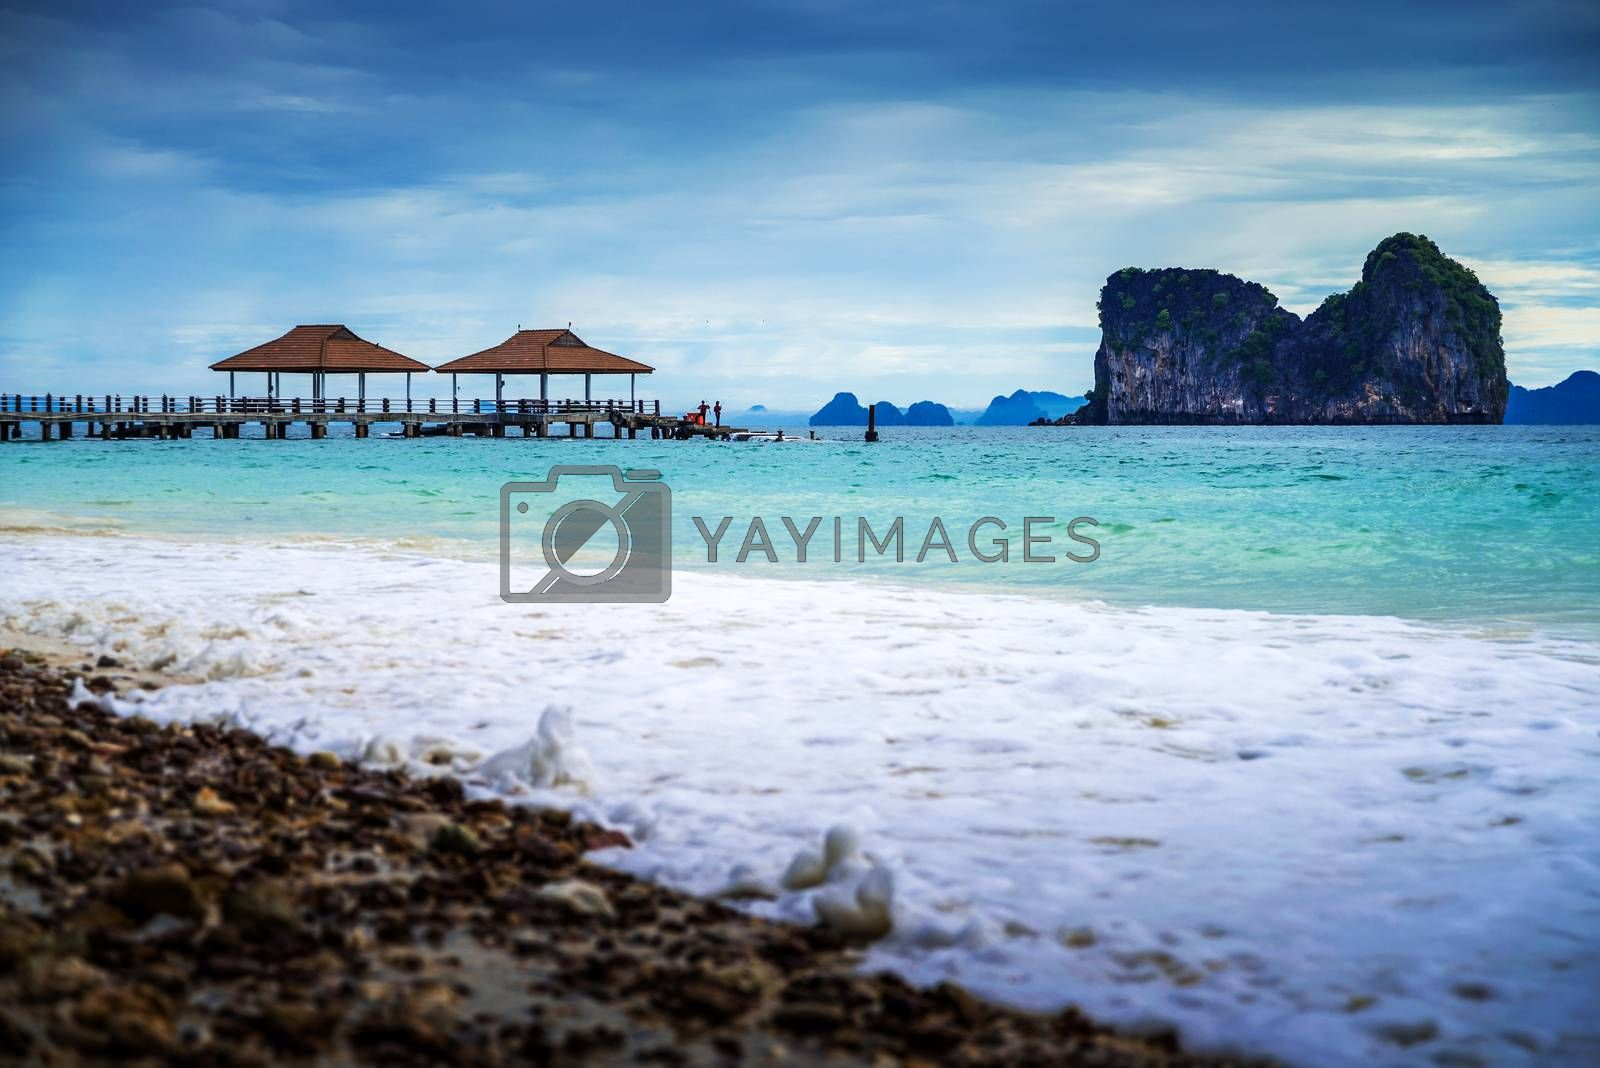 Andaman sea View in Koh Ngai Island in Thailand by jakgree